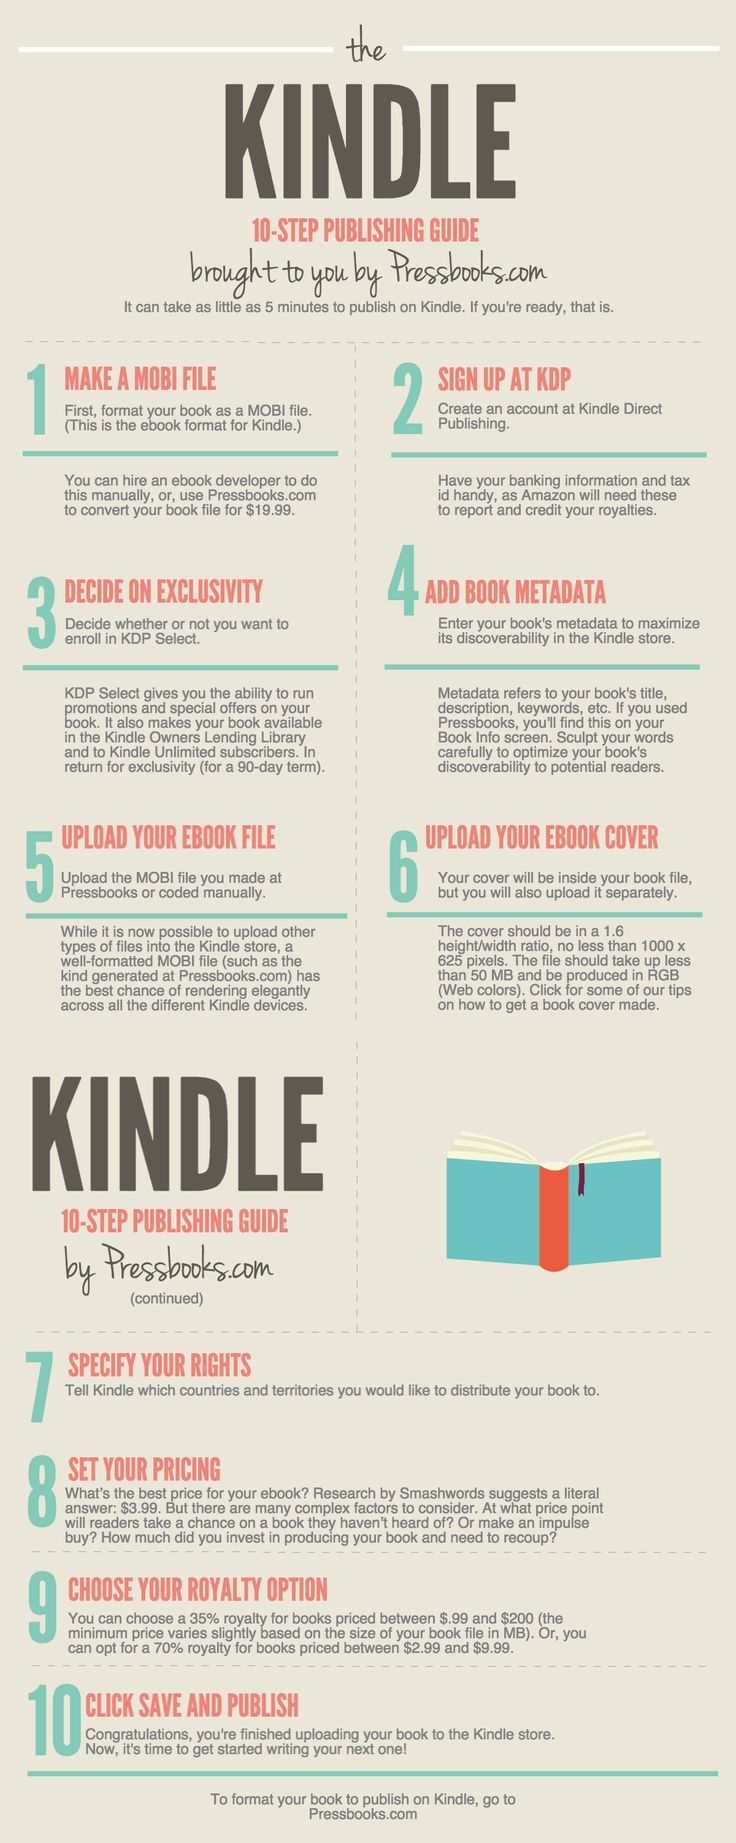 A 10-step guide to self publishing on Kindle. Re-pinned by Spineless Design - Bespoke eBook cover design service - http://www.spinelessdesign.co.uk